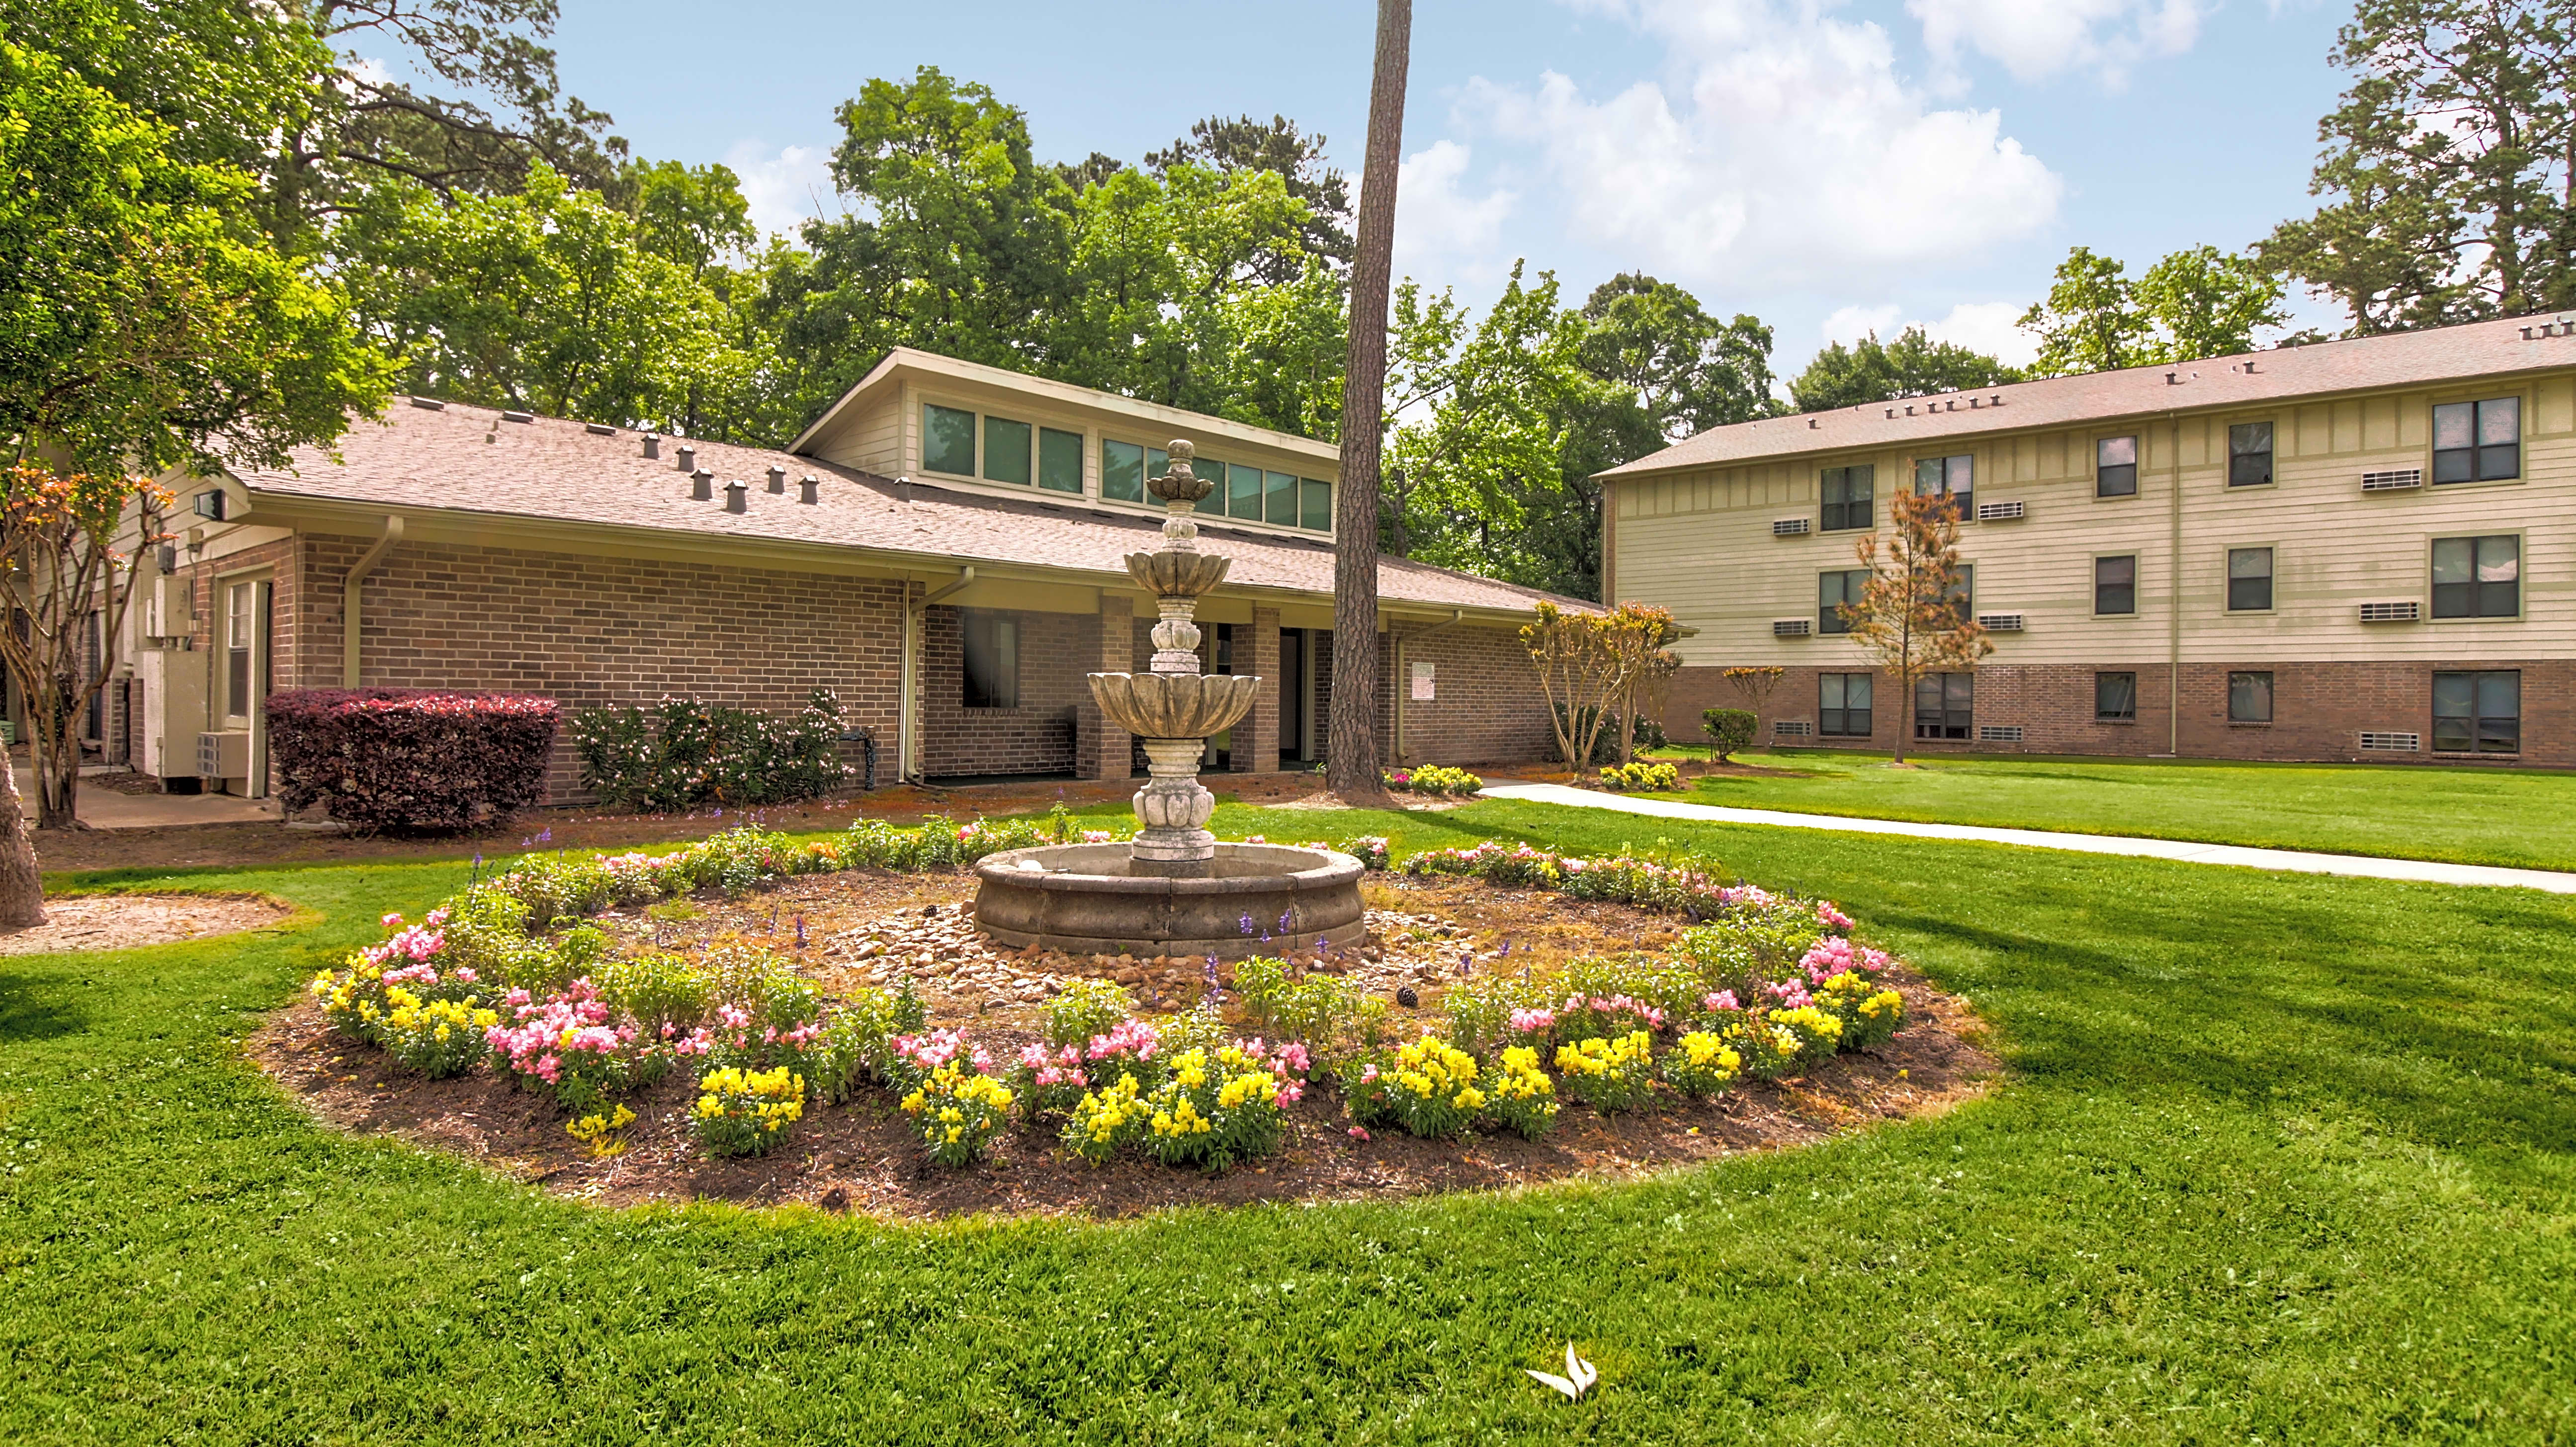 Apartments Near NHMCC Tamarac Pines for North Harris Montgomery Community College Students in The Woodlands, TX